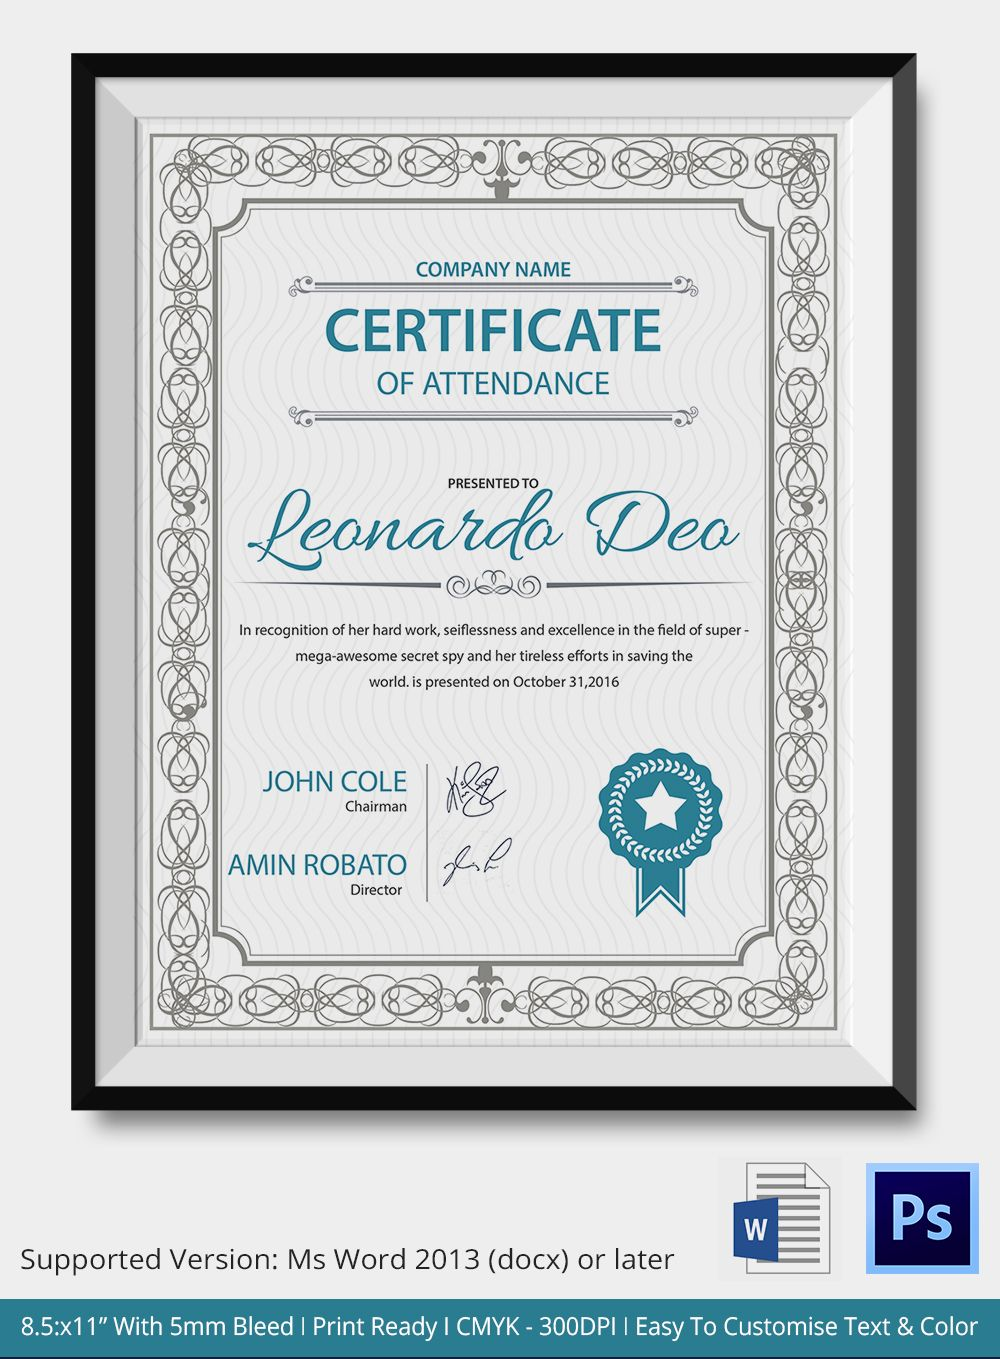 Professional editable certificate of attendance template sample professional editable certificate of attendance template sample for company with blue and gray color scheme yadclub Choice Image